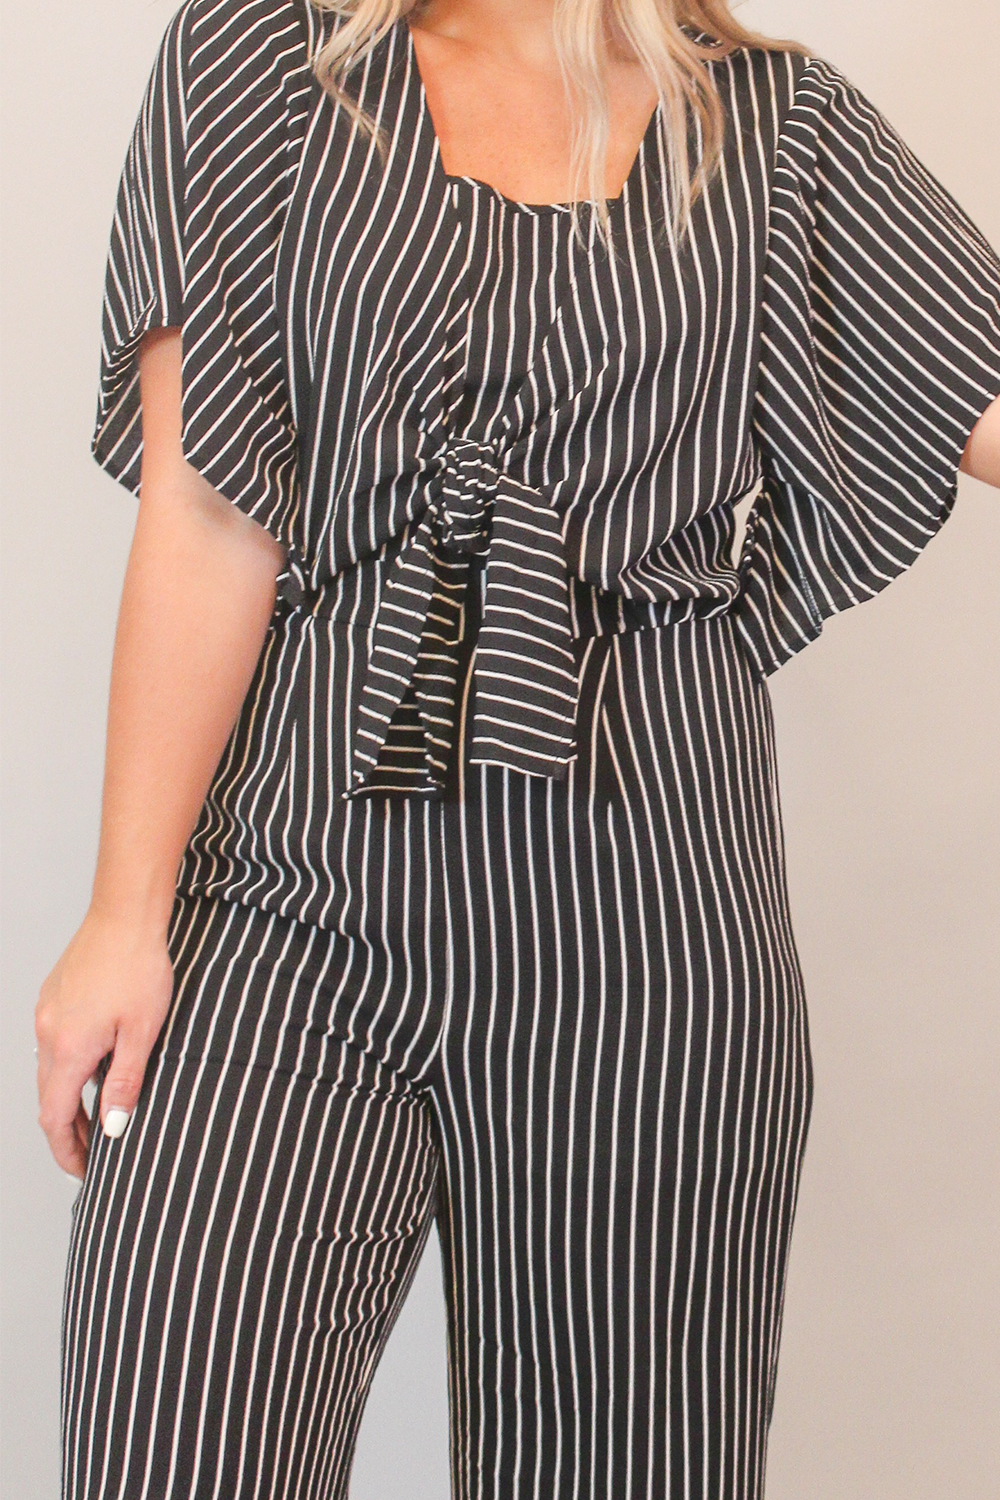 Black and White Striped Short Sleeve Jumpsuit with Front Tie